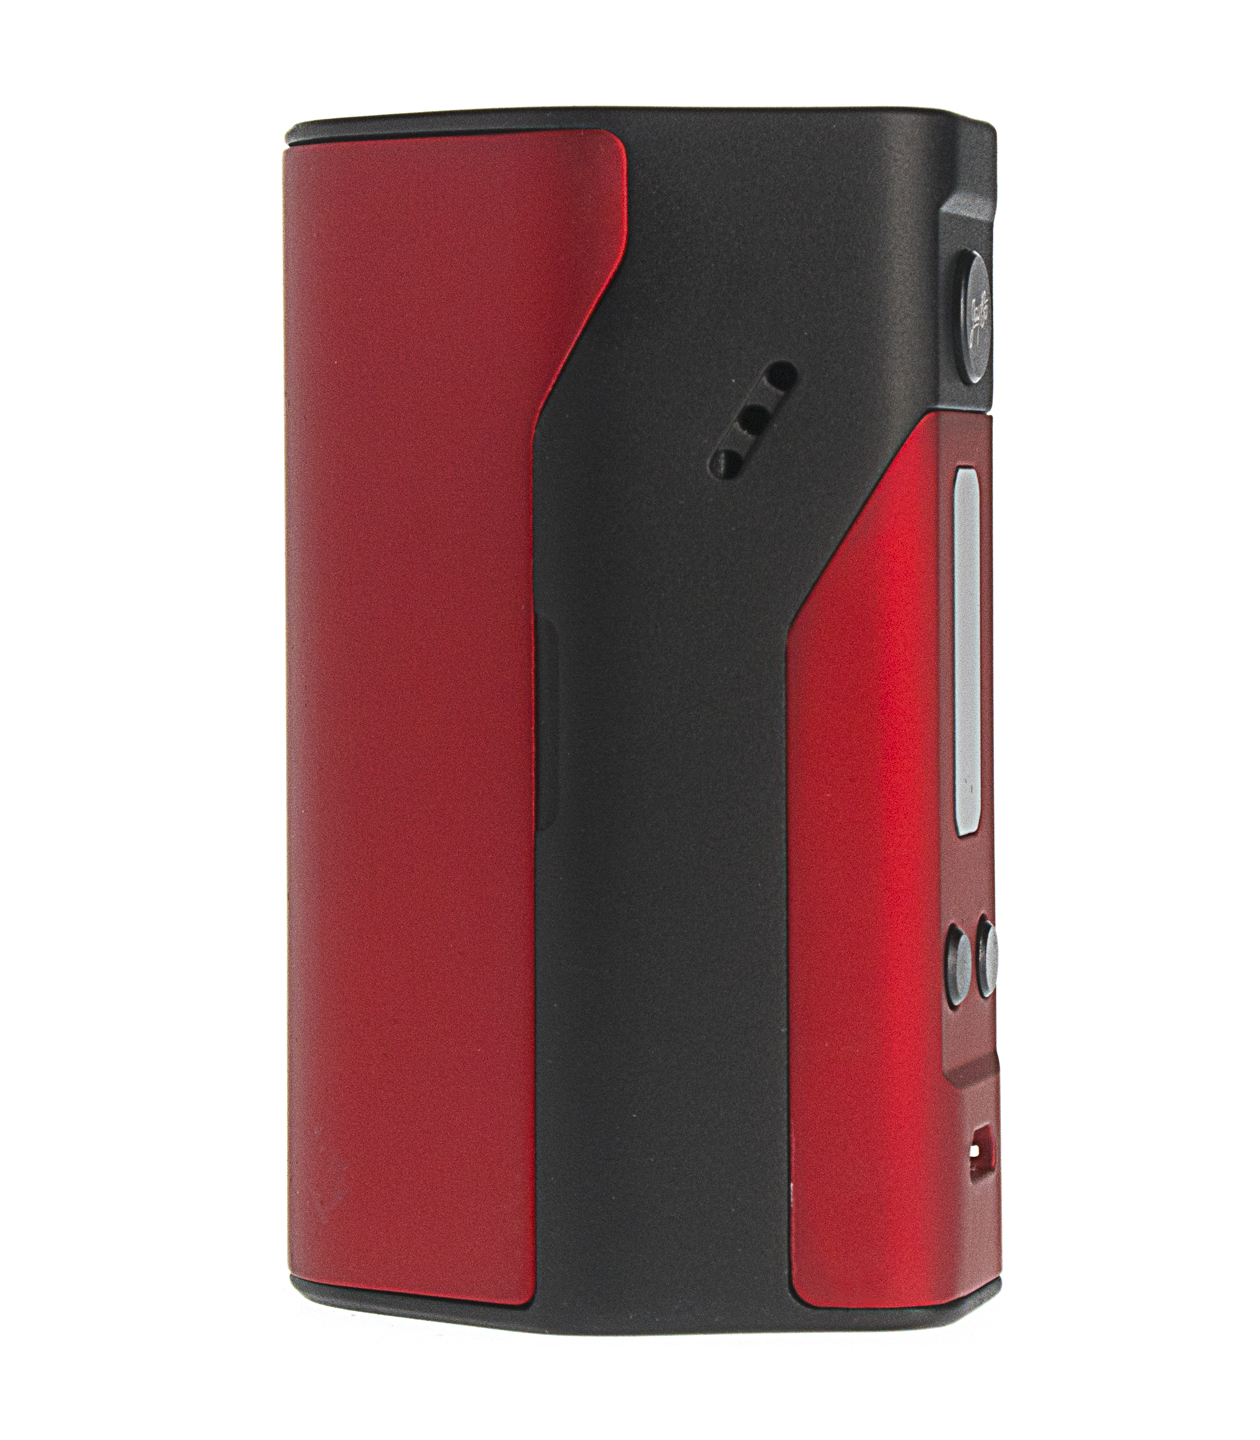 Бокс Мод Reuleaux RX 200